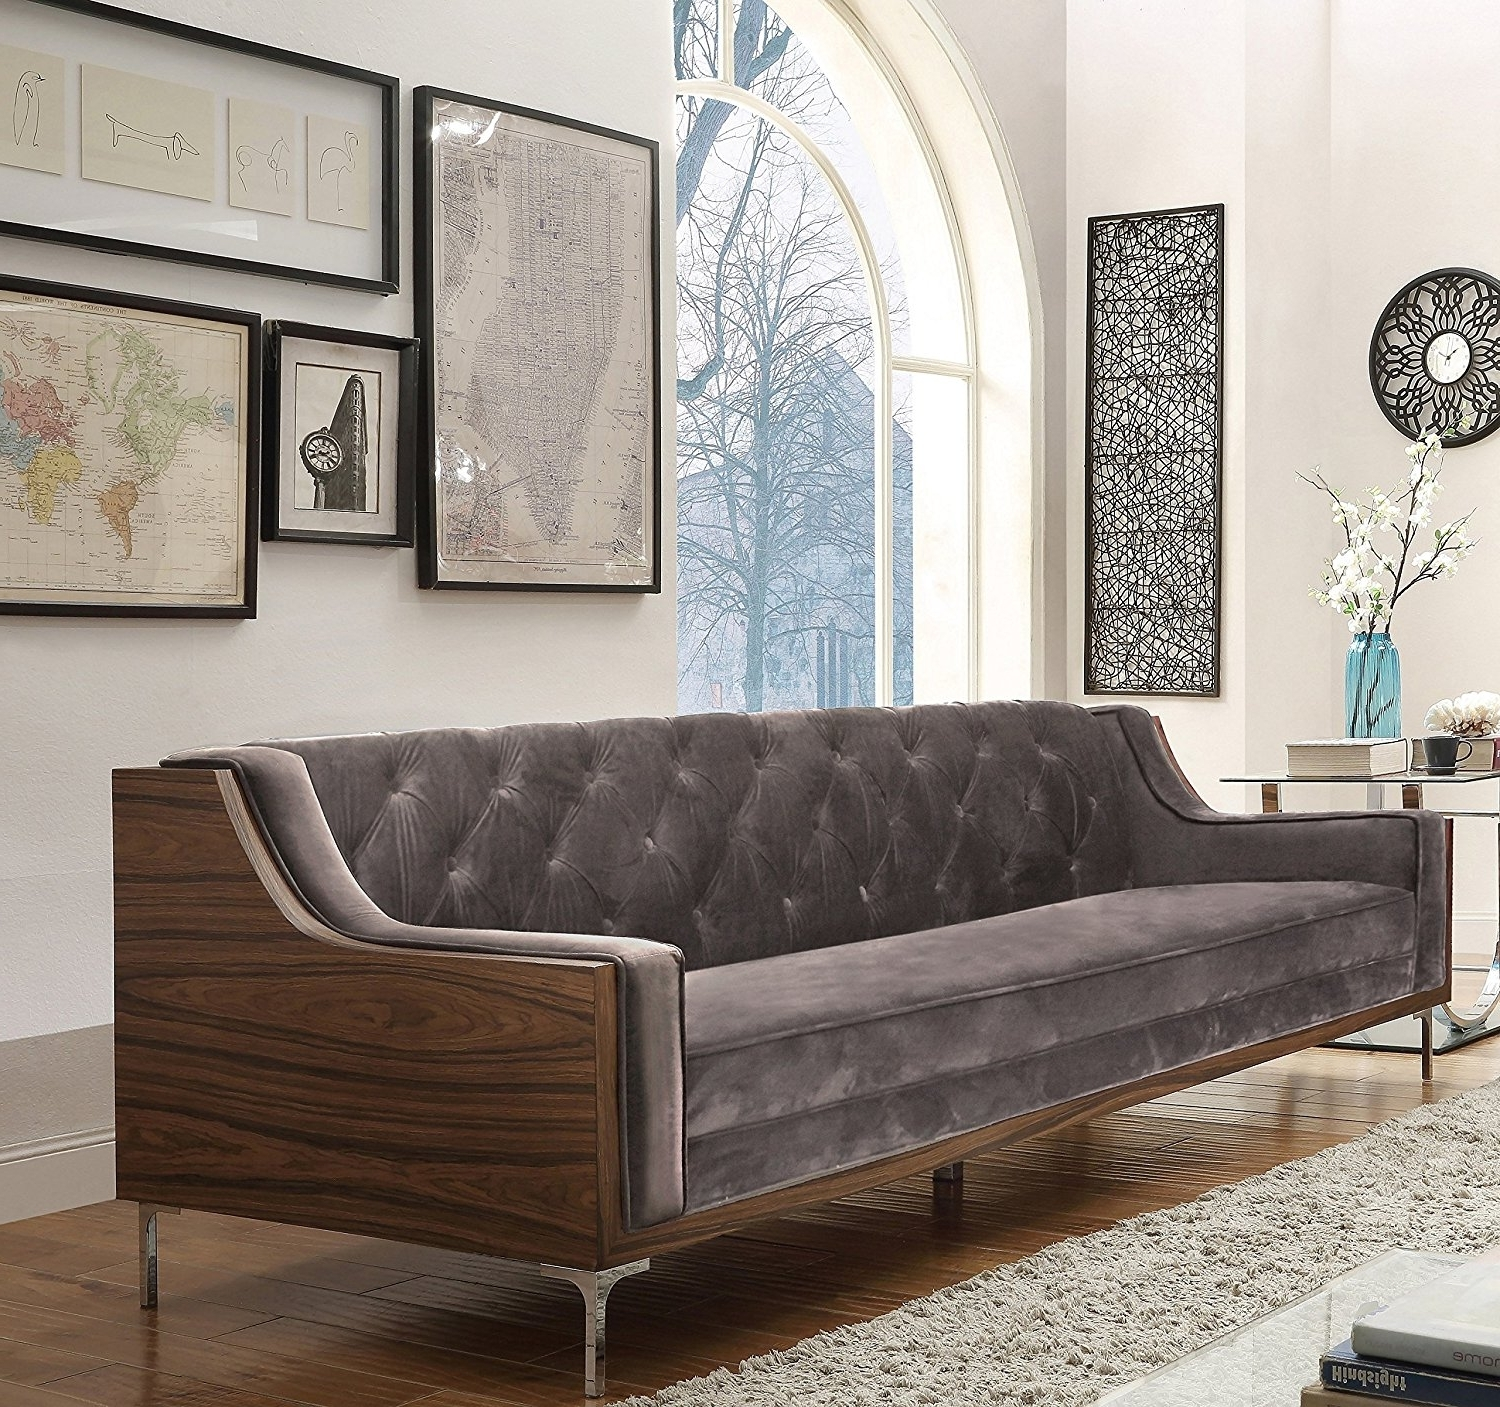 Most Popular Furniture : Purple Tufted Sofa For Sale Kijiji Peterborough Sofa Pertaining To Kijiji Ottawa Sectional Sofas (View 13 of 20)